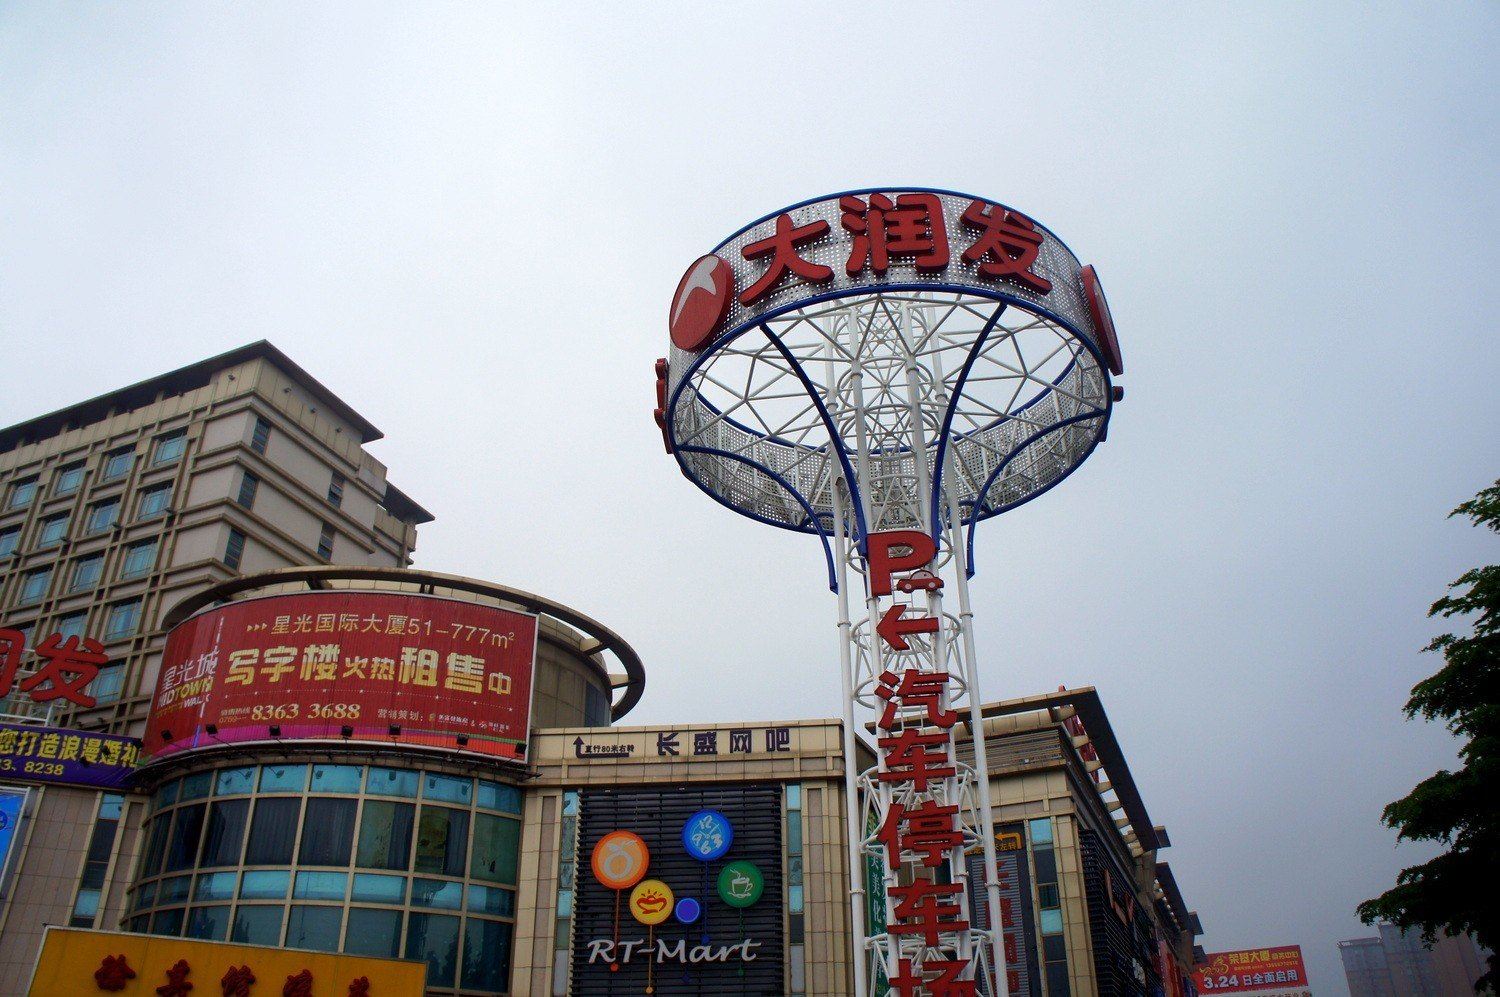 Dongguan city center in China - part of expat Dongguan life.